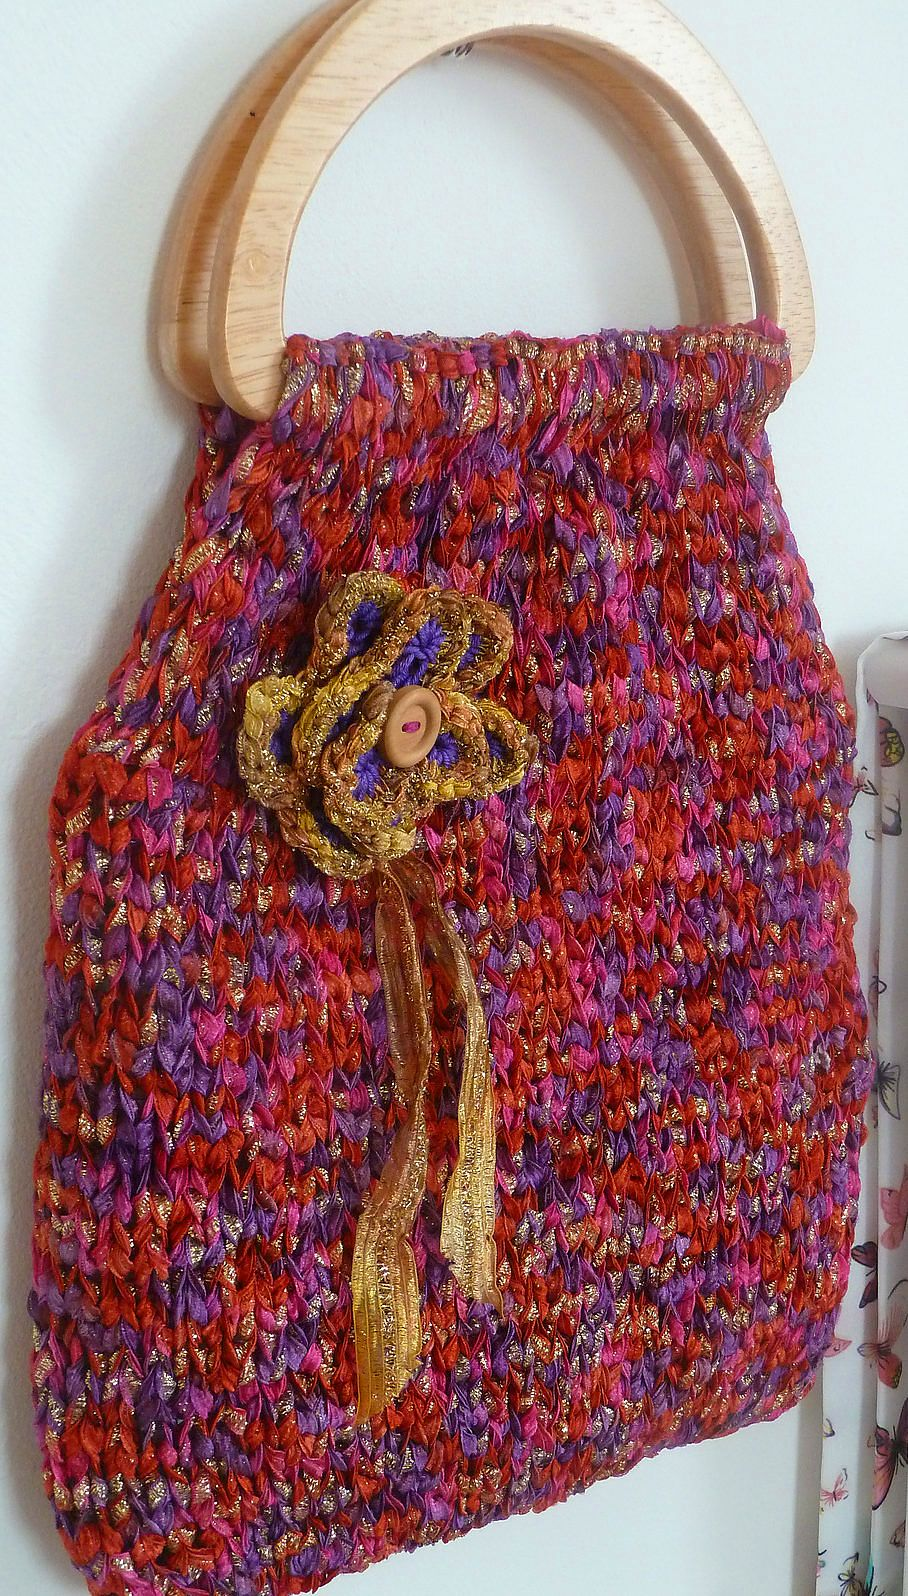 Knitting Patterns Using Recycled Materials | Yarn bag, Easy peasy ...